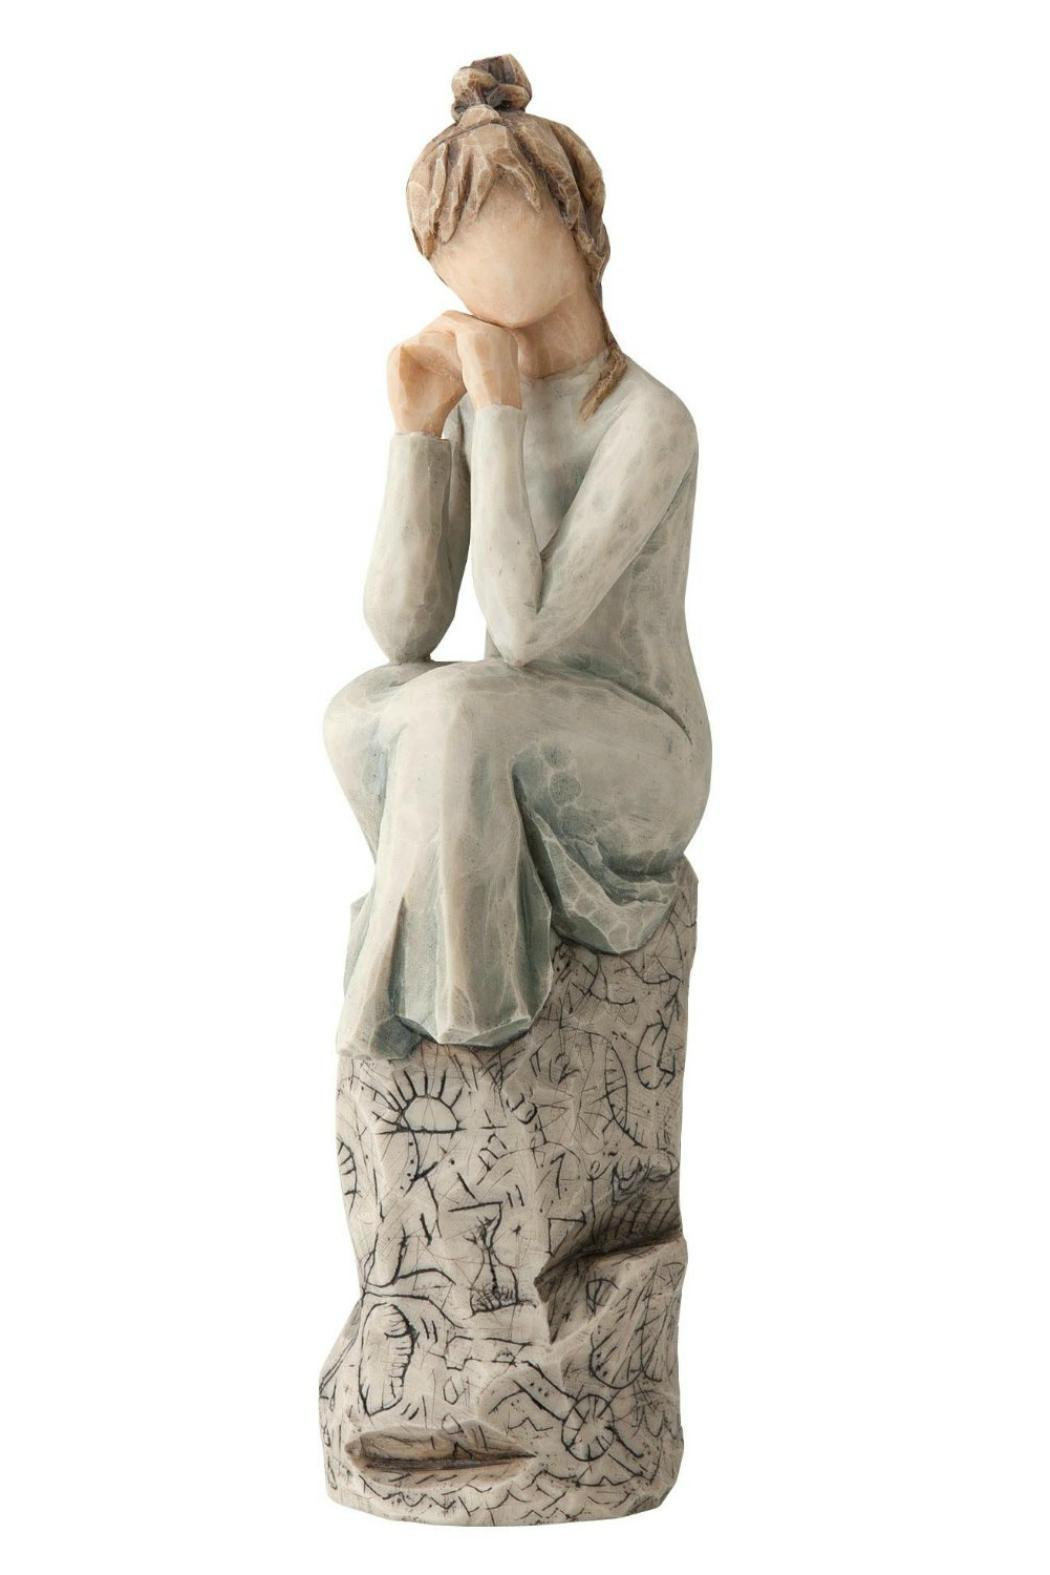 Willow Tree(r) by Susan Lordi, from DEMDACO Patience Figurine - Main Image